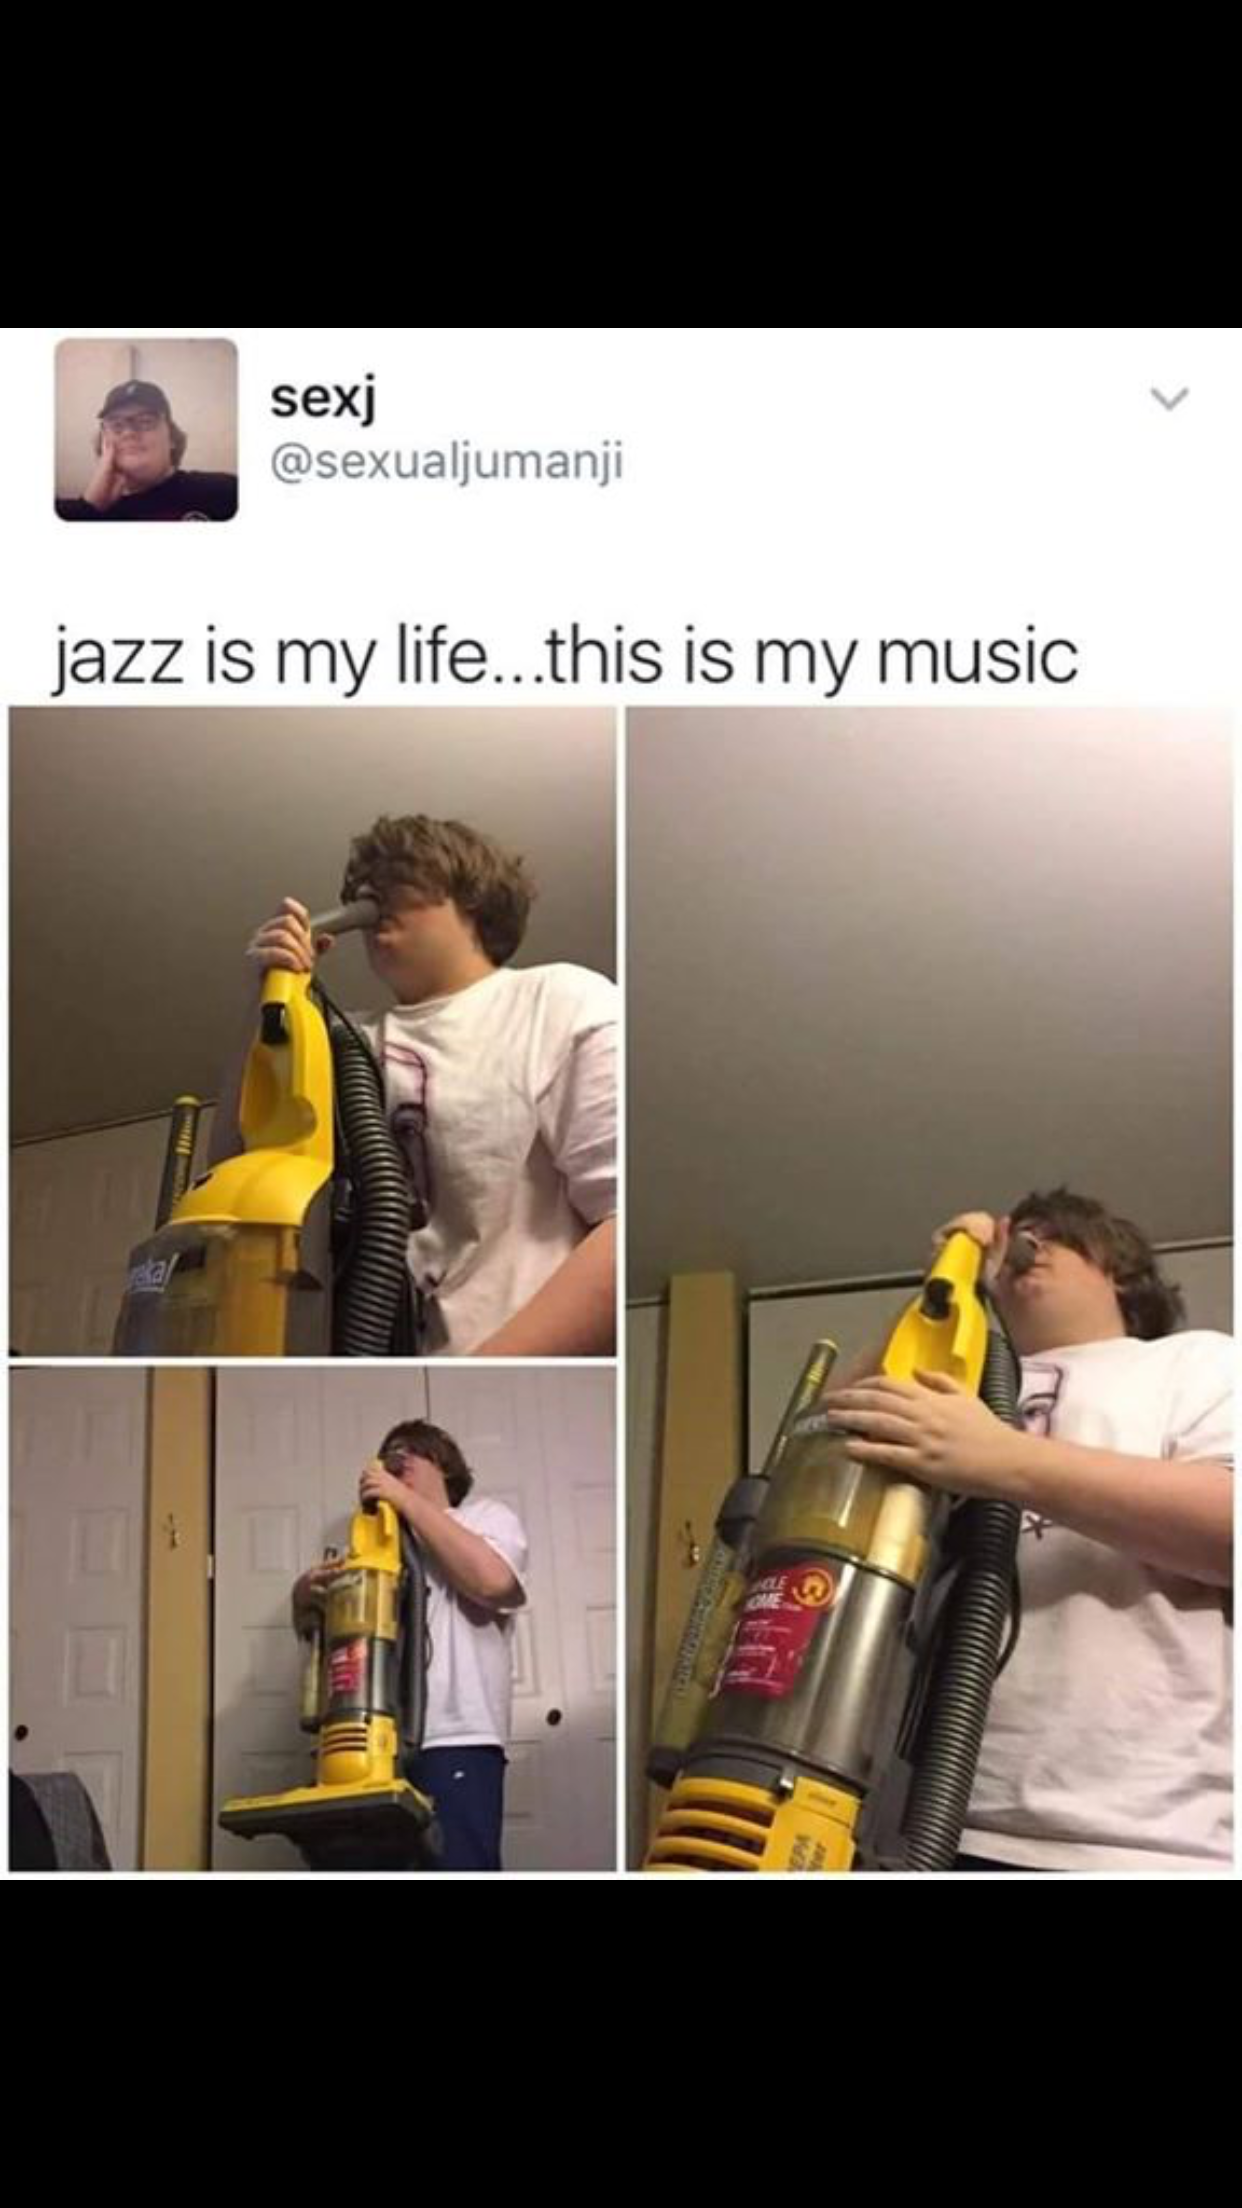 Pin by Salt Shaker on Band memes Memes, Funny memes, My